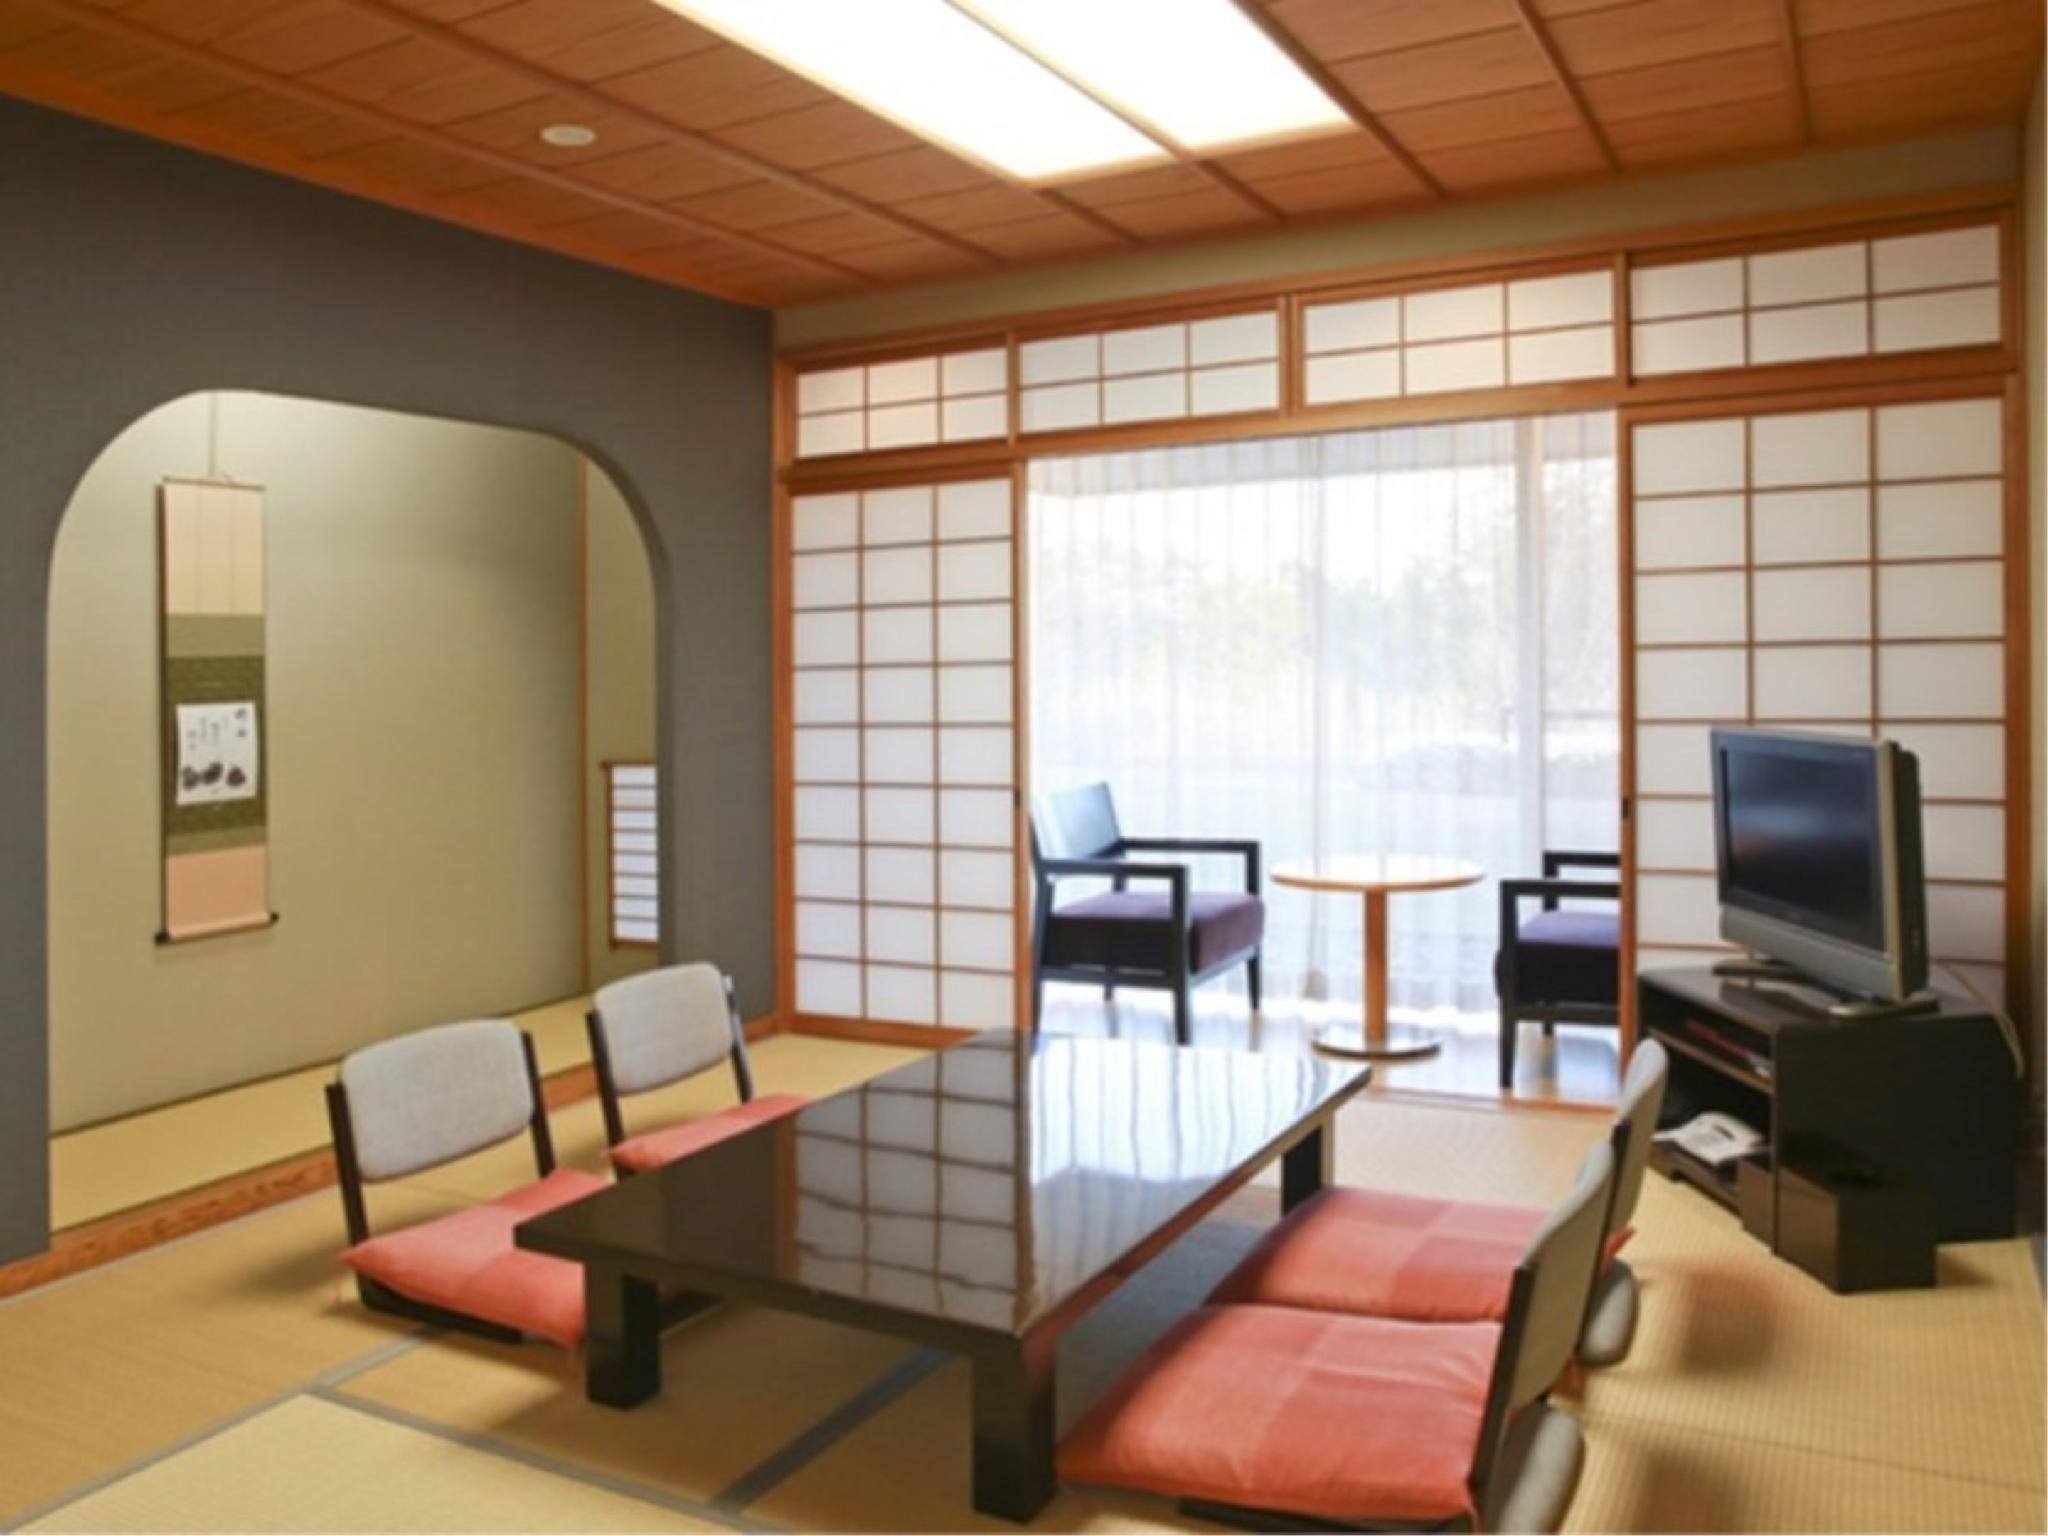 모던 다다미 객실(테라스) (Modern Japanese-style Room with Terrace)